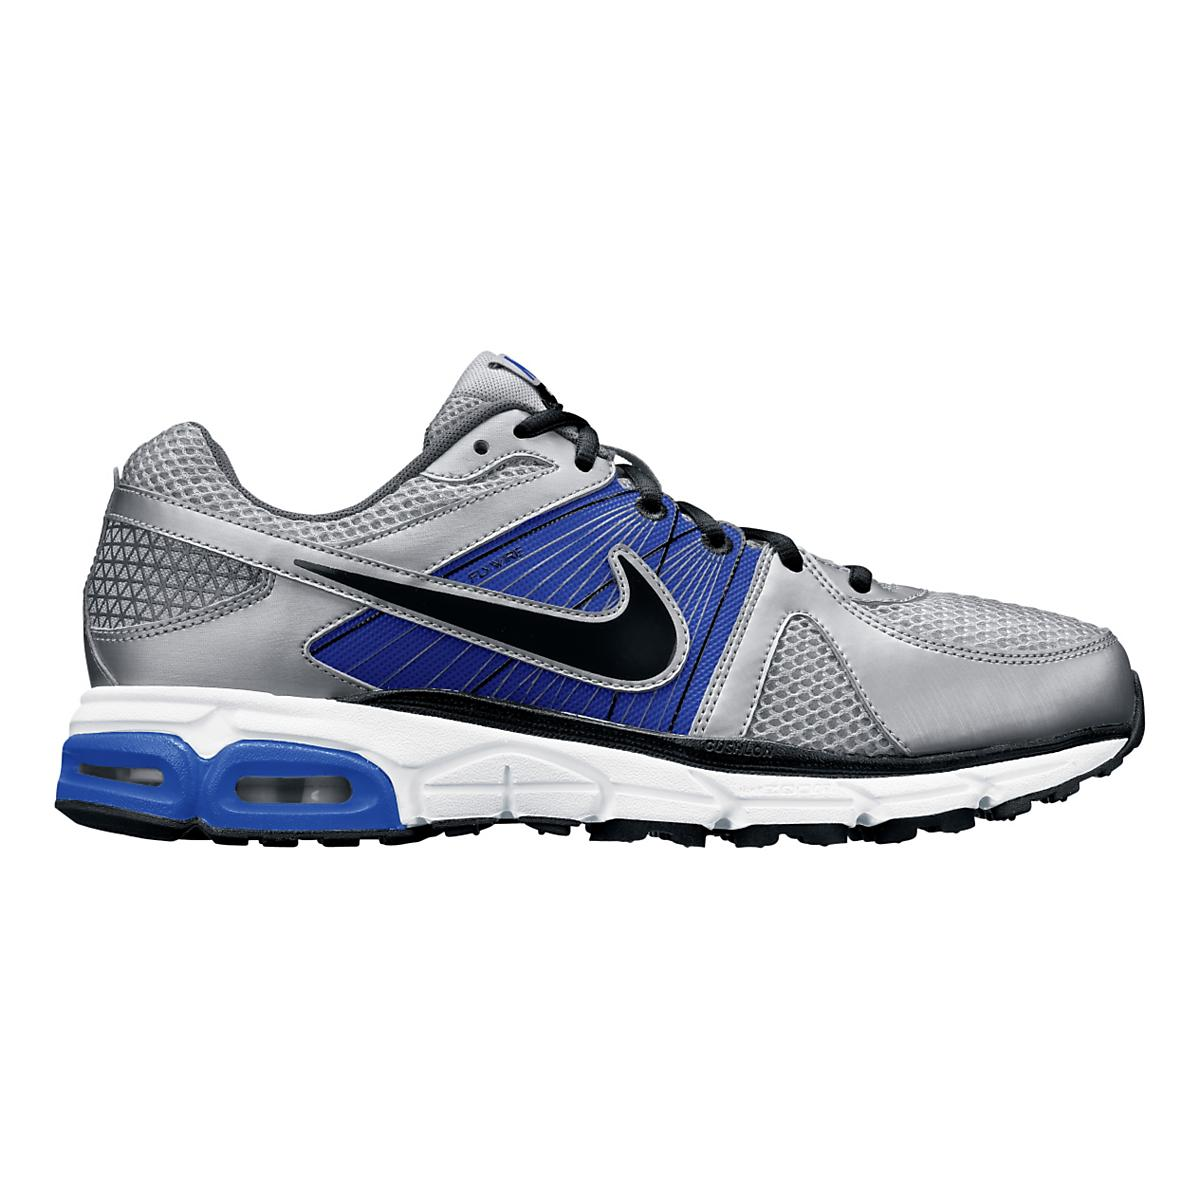 buy online 85055 56e27 Mens Nike Air Max Moto+ 9 Running Shoe at Road Runner Sports